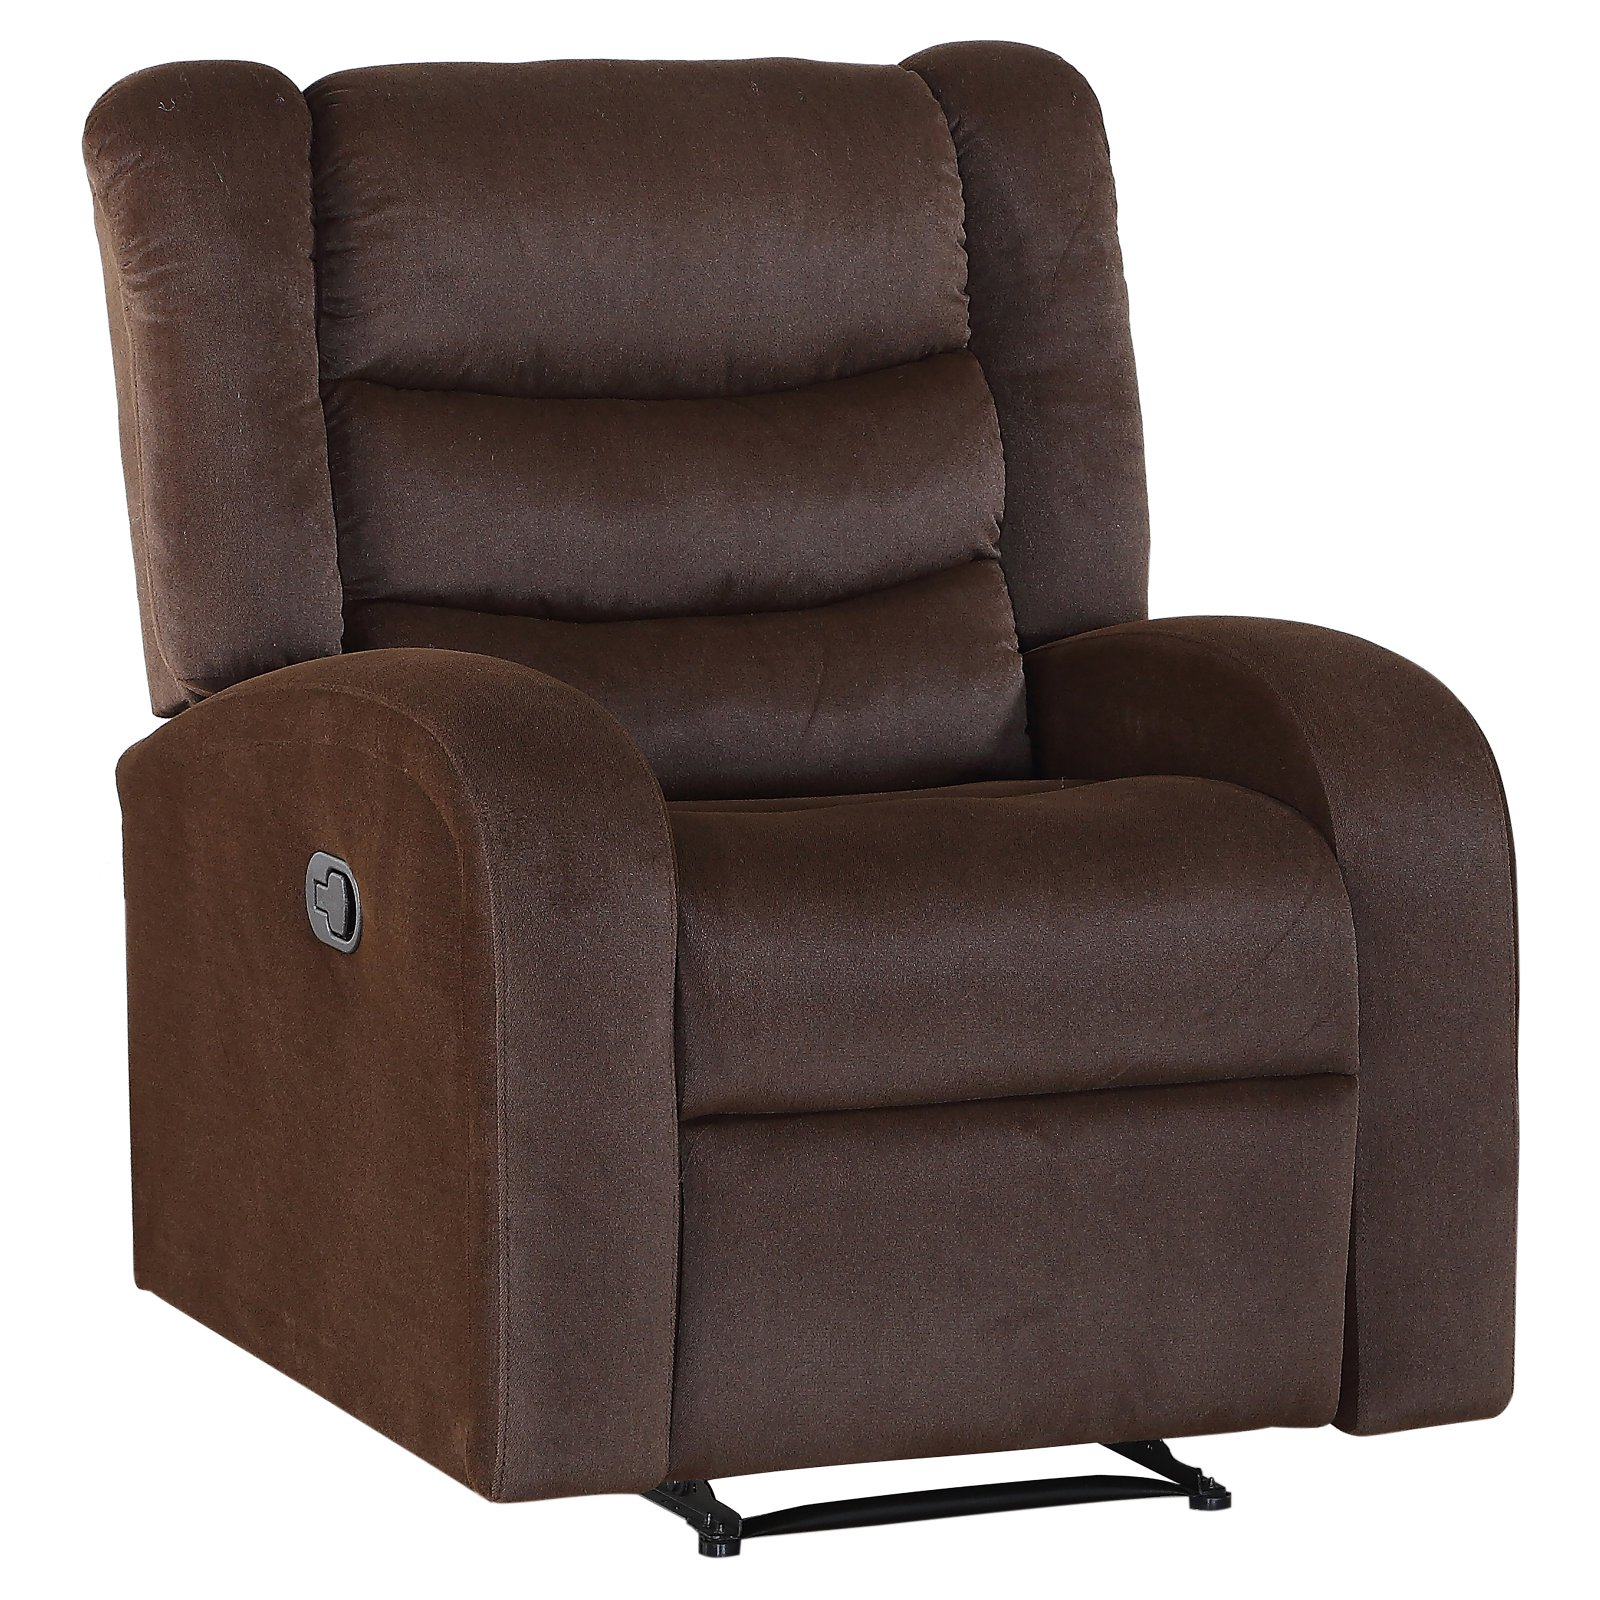 Steve Silver Co. Madeline Manual Fabric Recliner